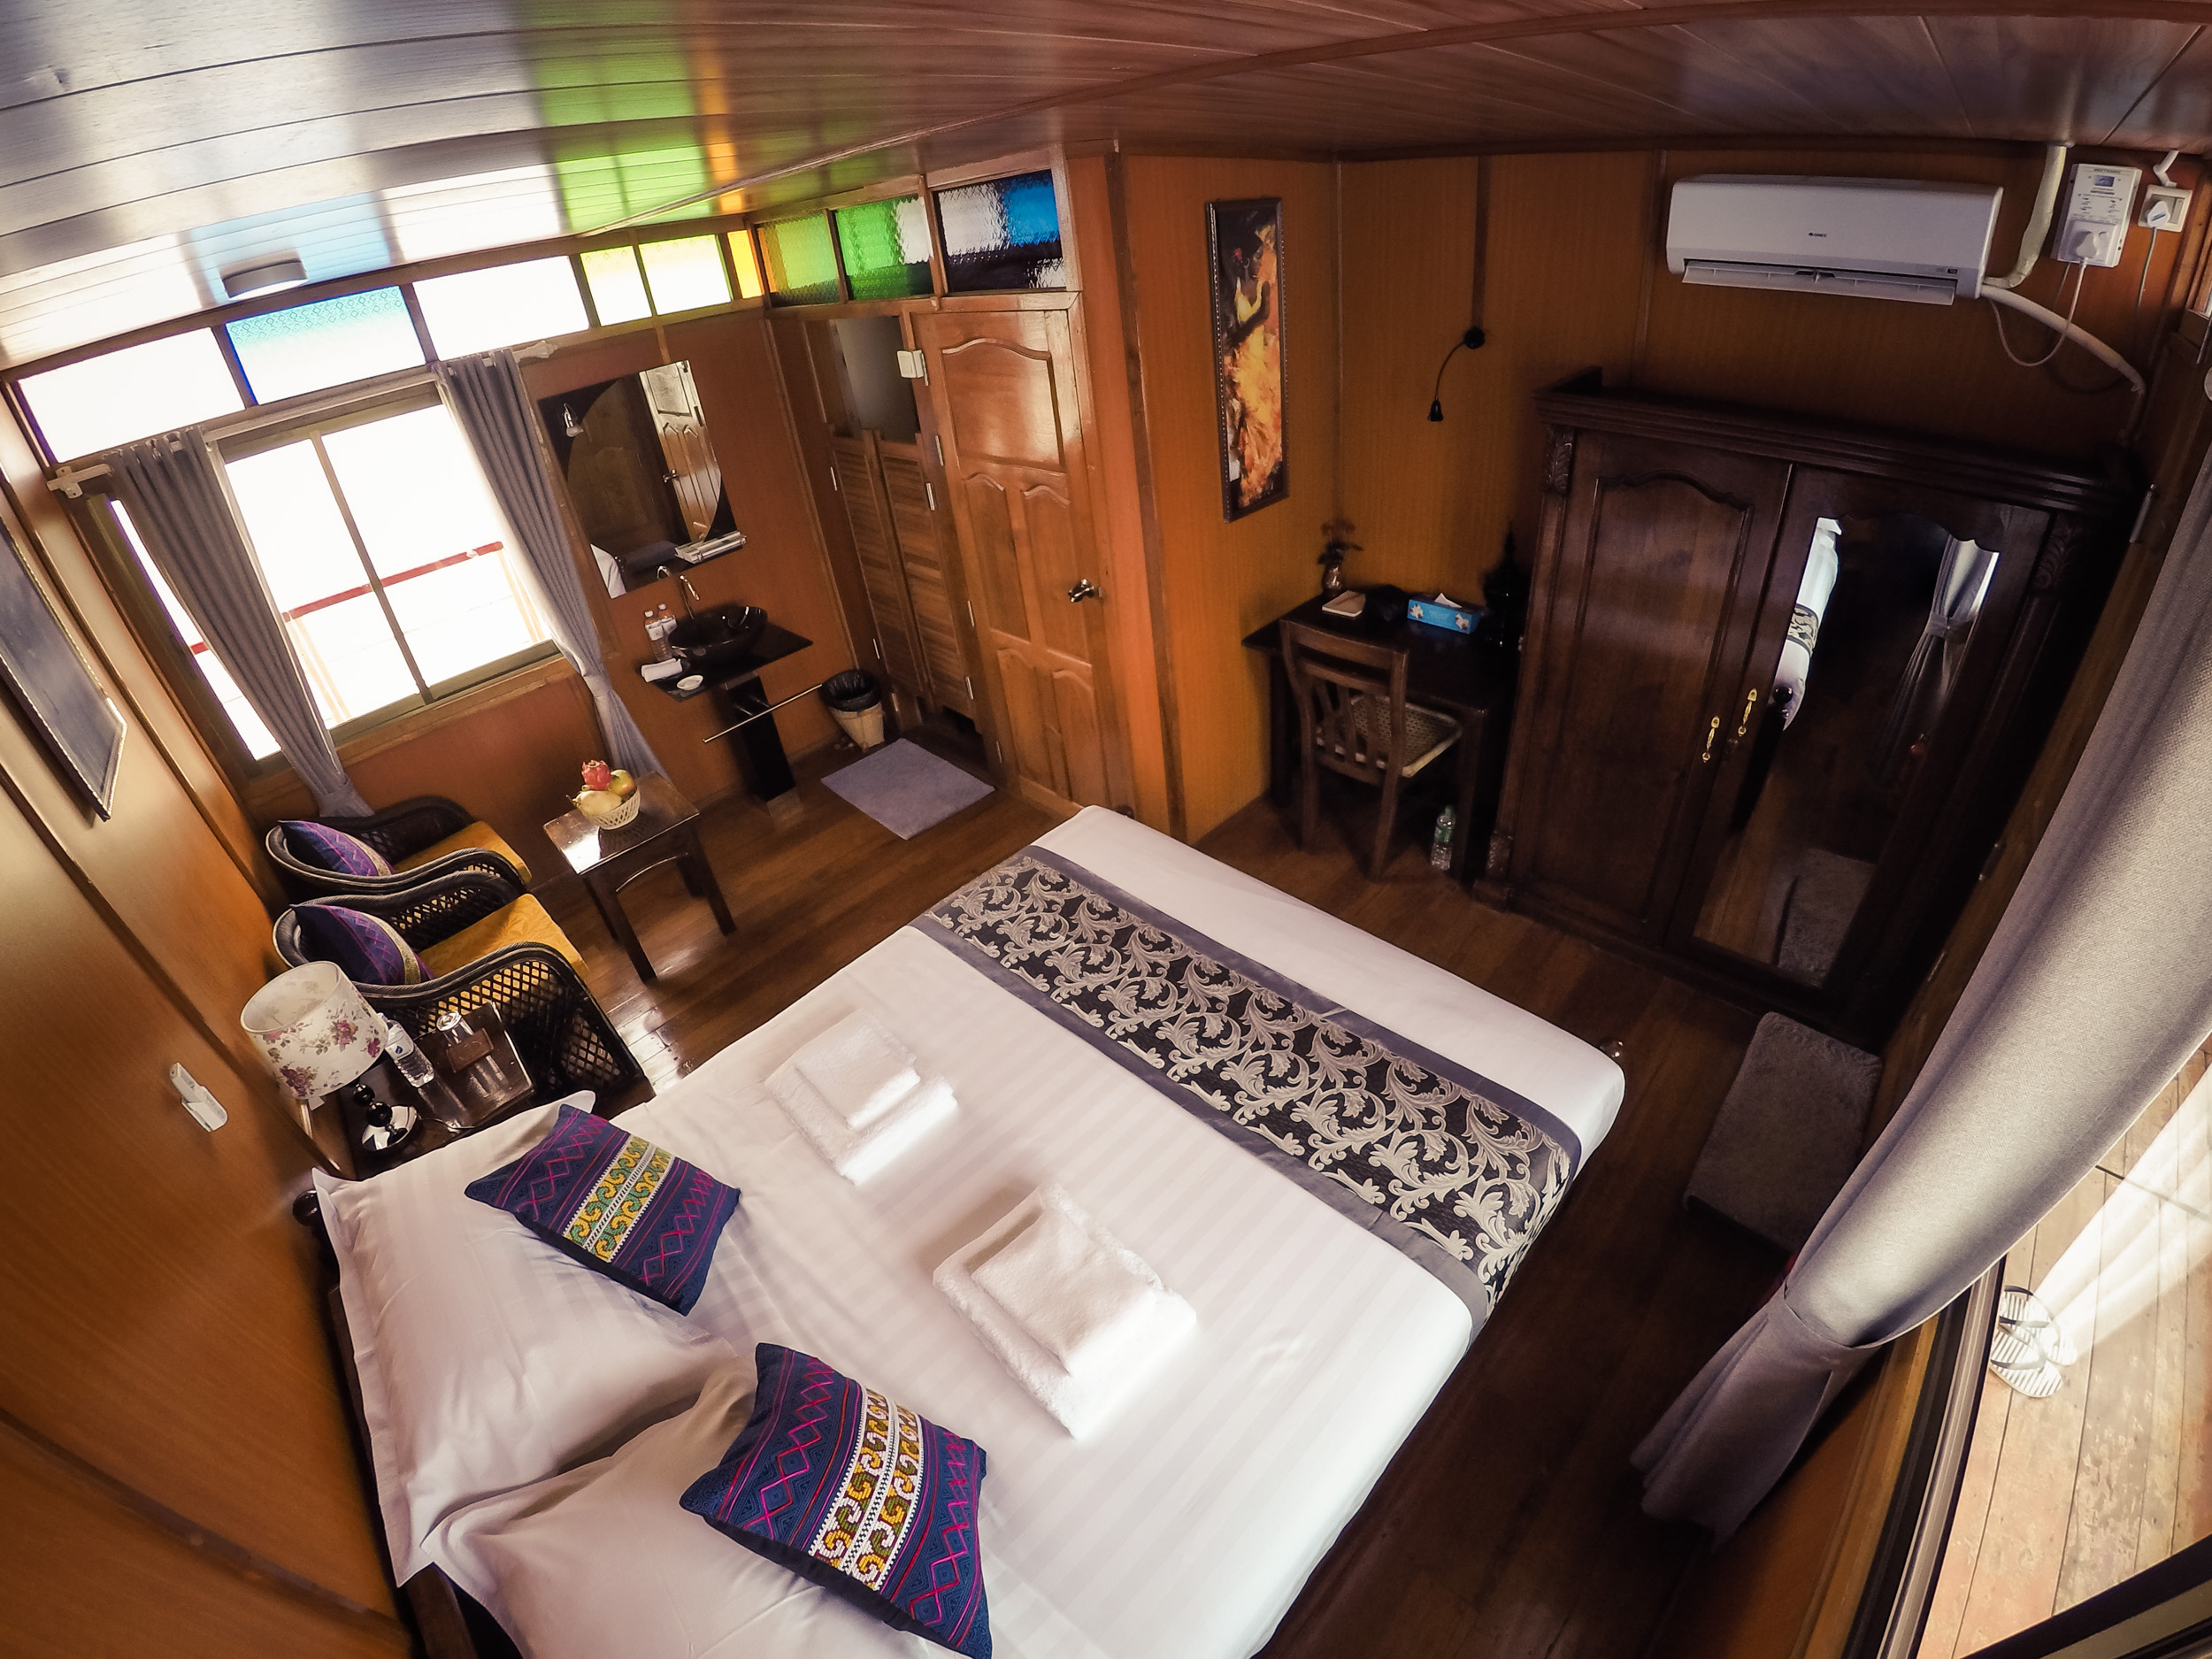 Deluxe River cruise room of Metta River Cruises of Myanmar